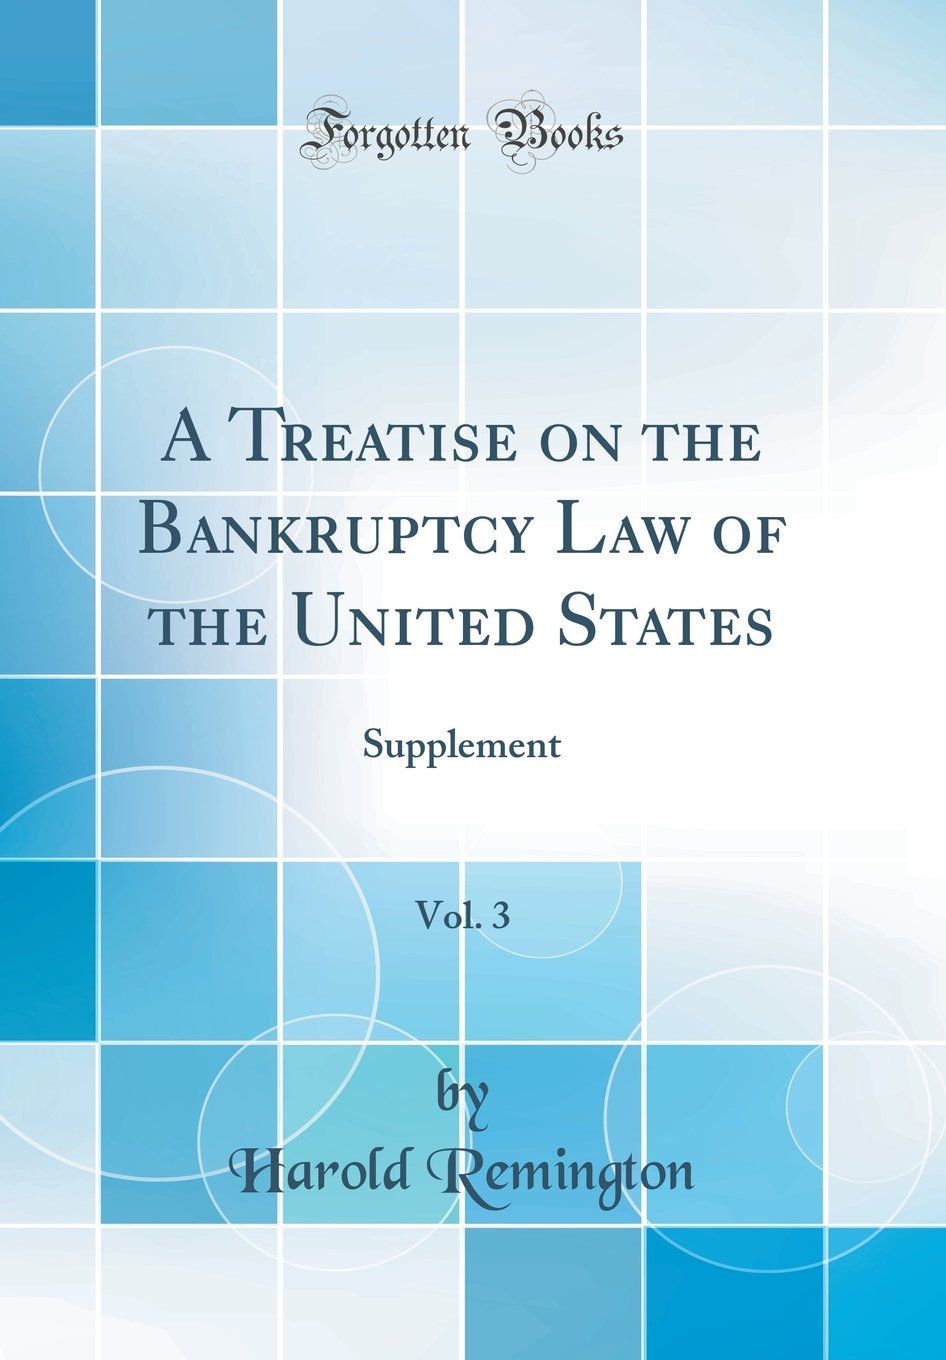 A Treatise on the Bankruptcy Law of the United States, Vol. 3: Supplement (Classic Reprint) PDF